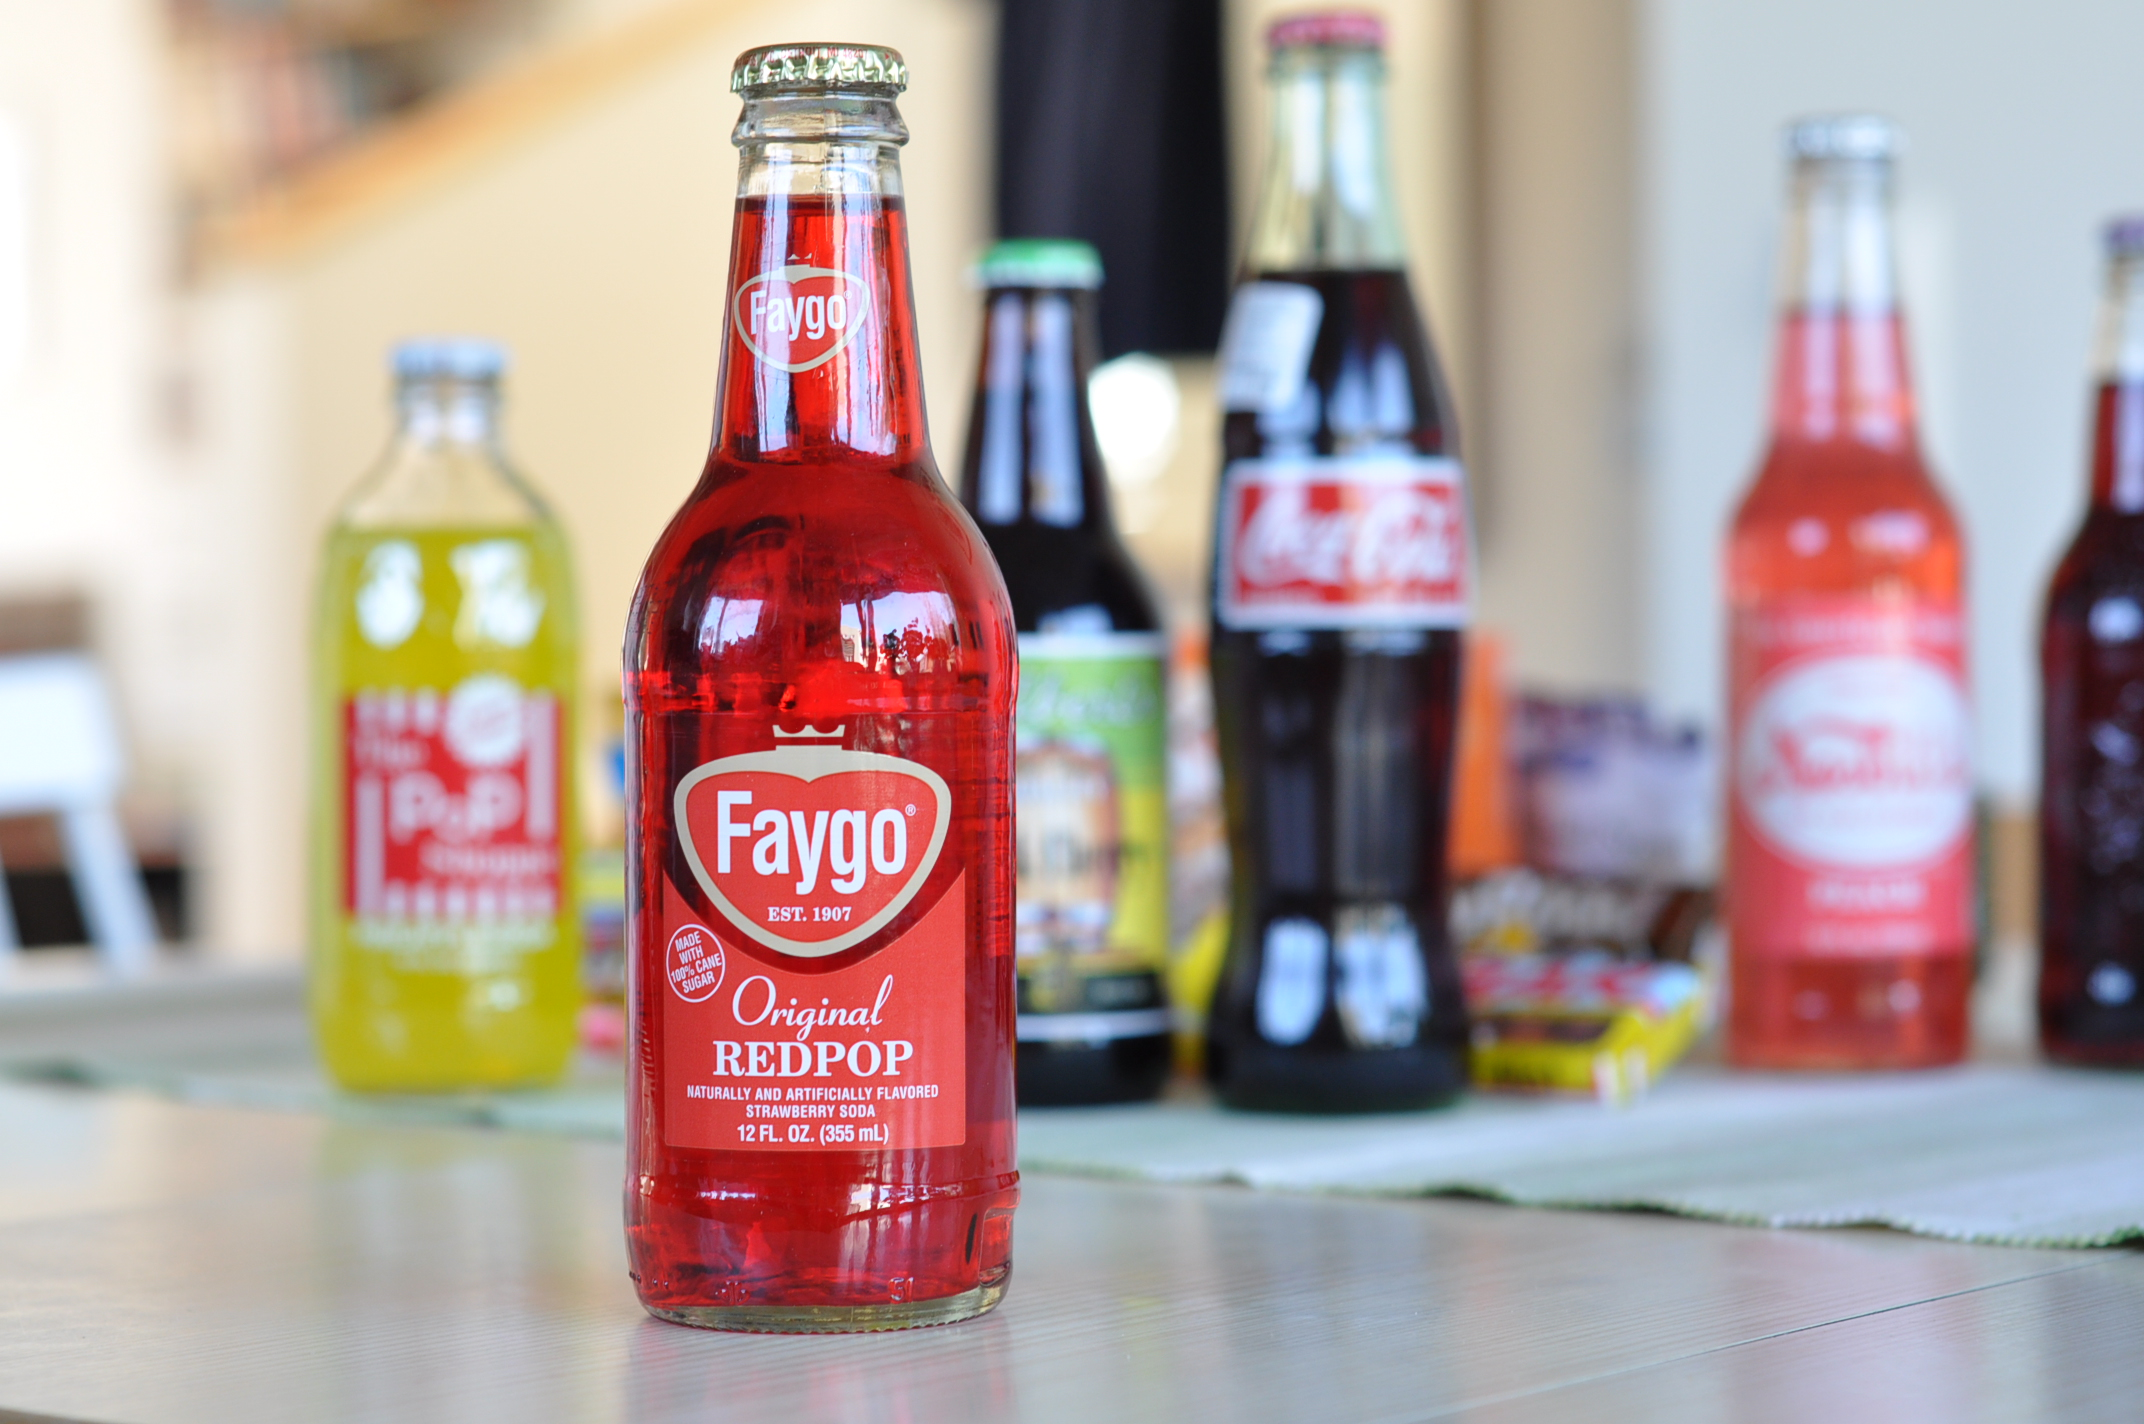 Faygo Redpop Strawberry